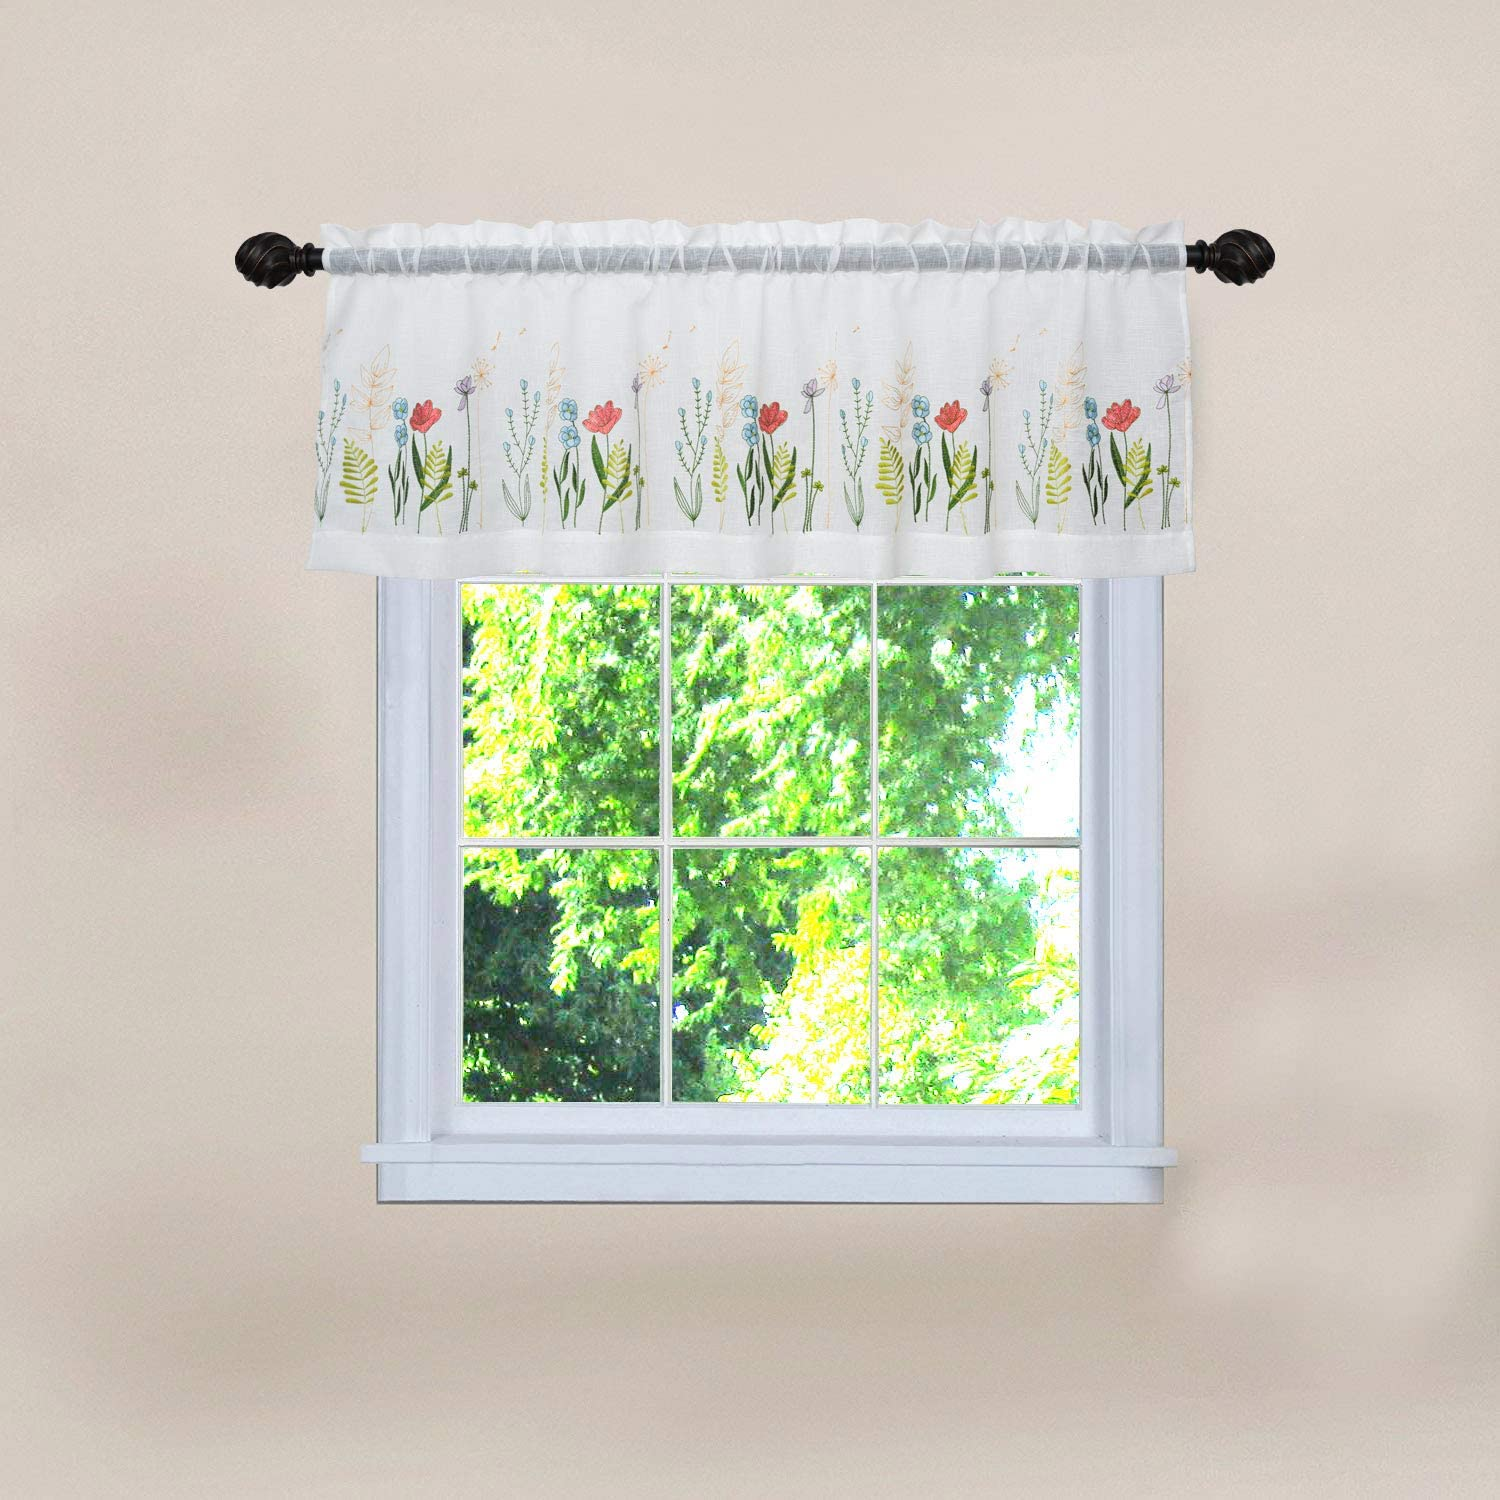 Creativesfun Pastoral Style Floral Valance Flower Country Yard Embroidery Sheer Lace Cafe Curtain Window Valance (Valance 丨W56 X L24-INCH, Flowers A)